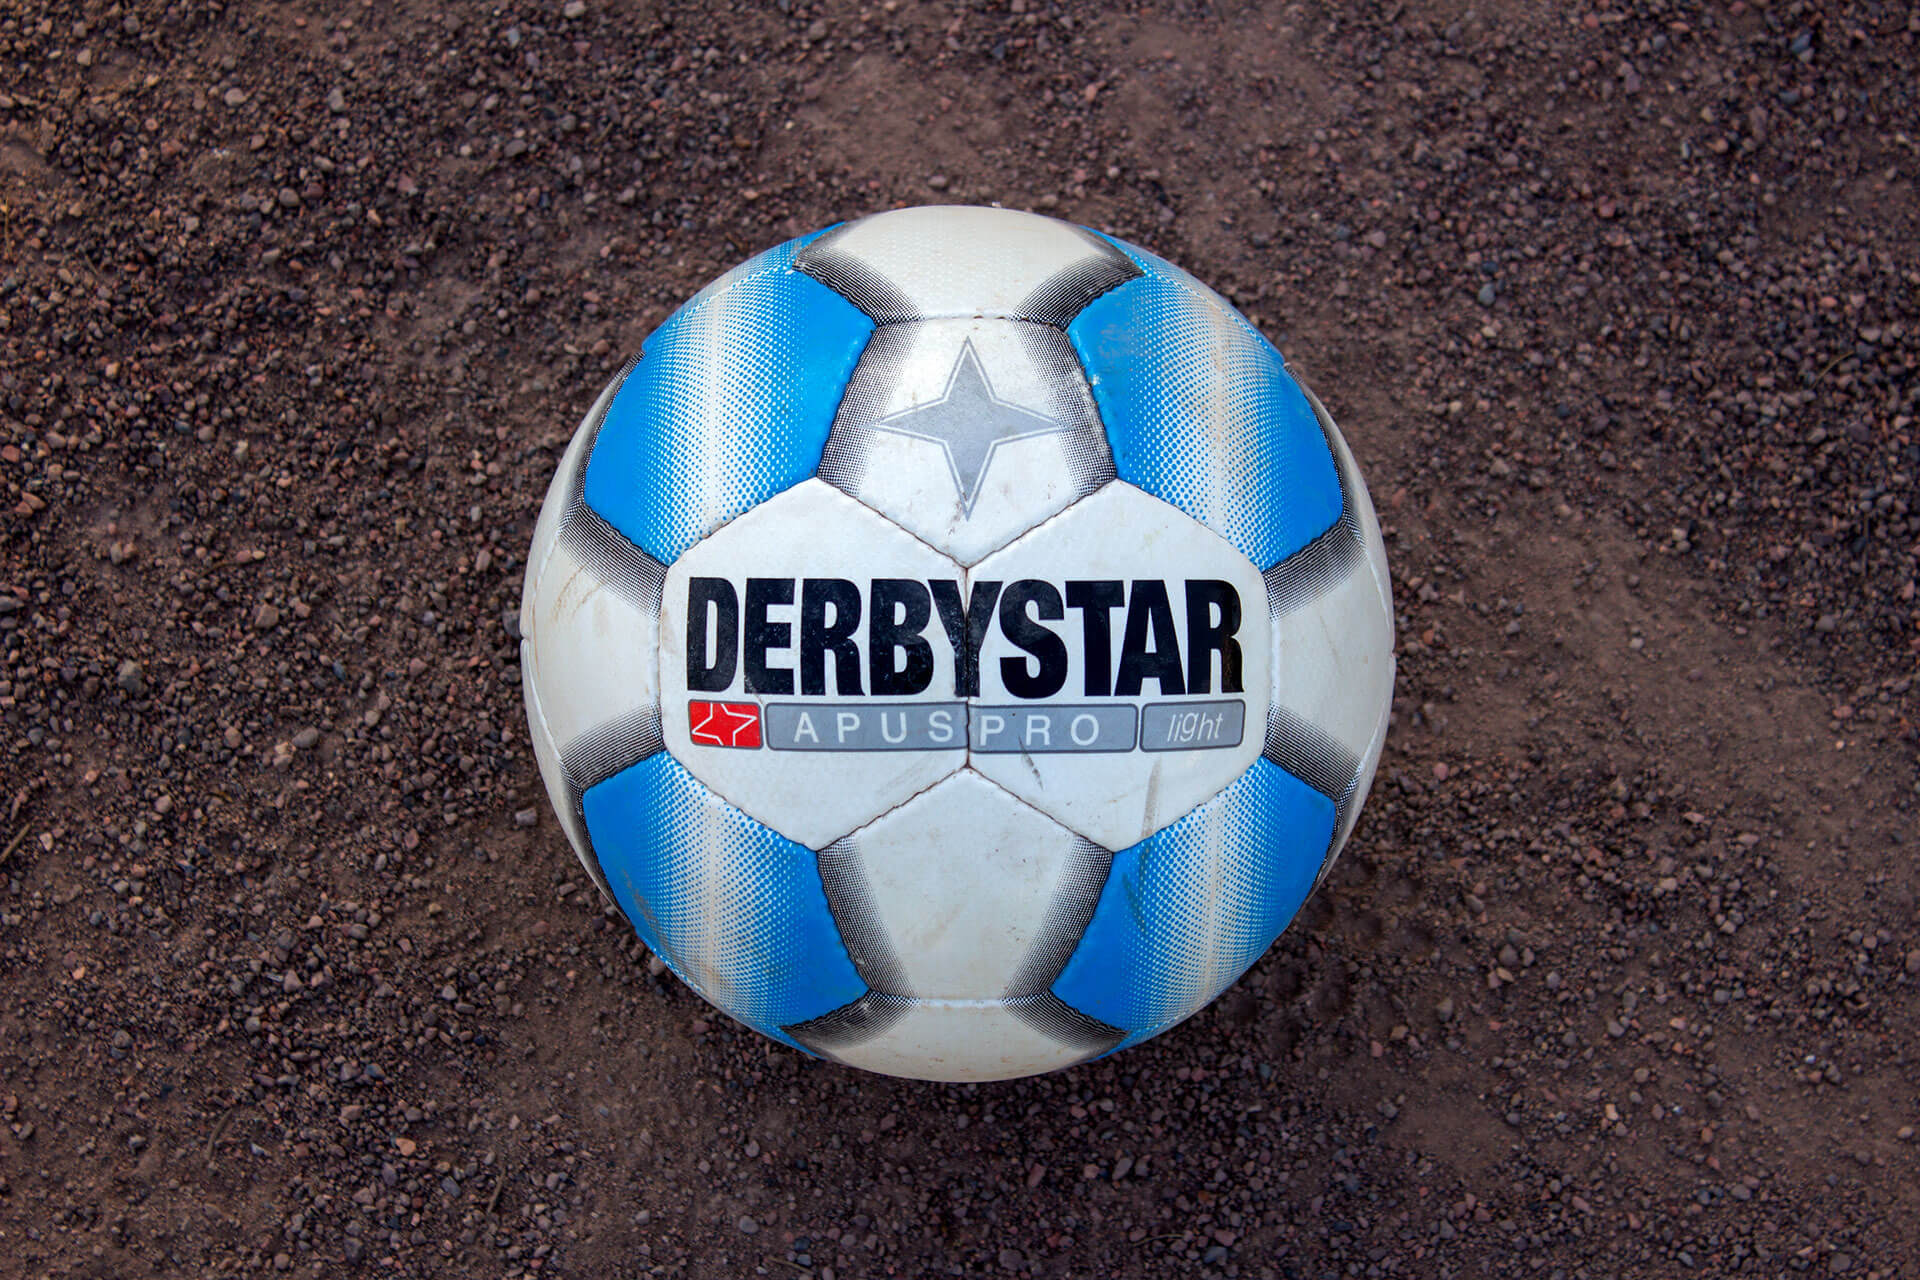 Derbystar Apus Pro light